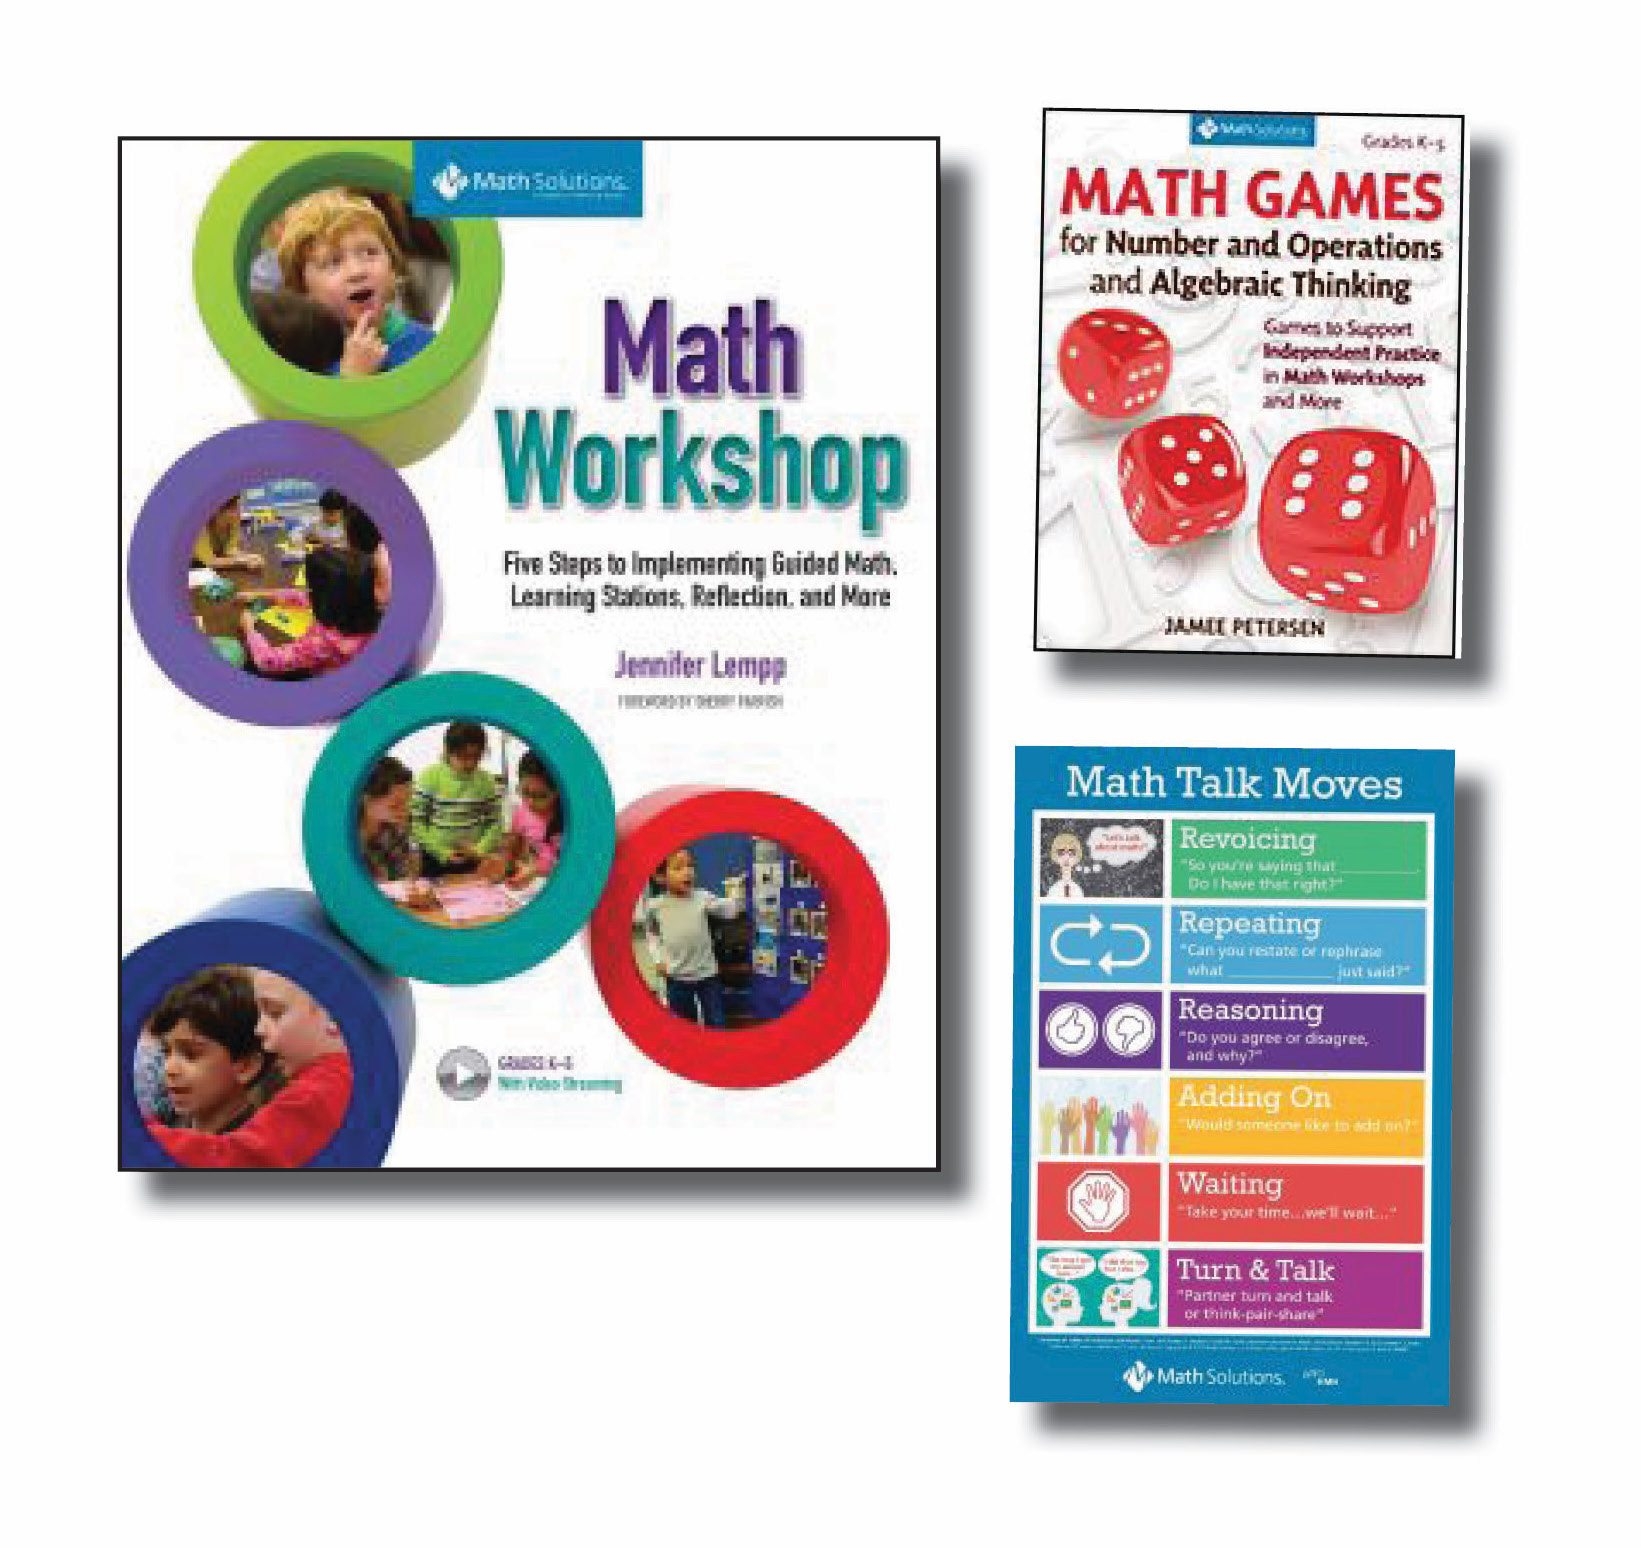 Enter to win Jennifer Lempp's Math Workshop